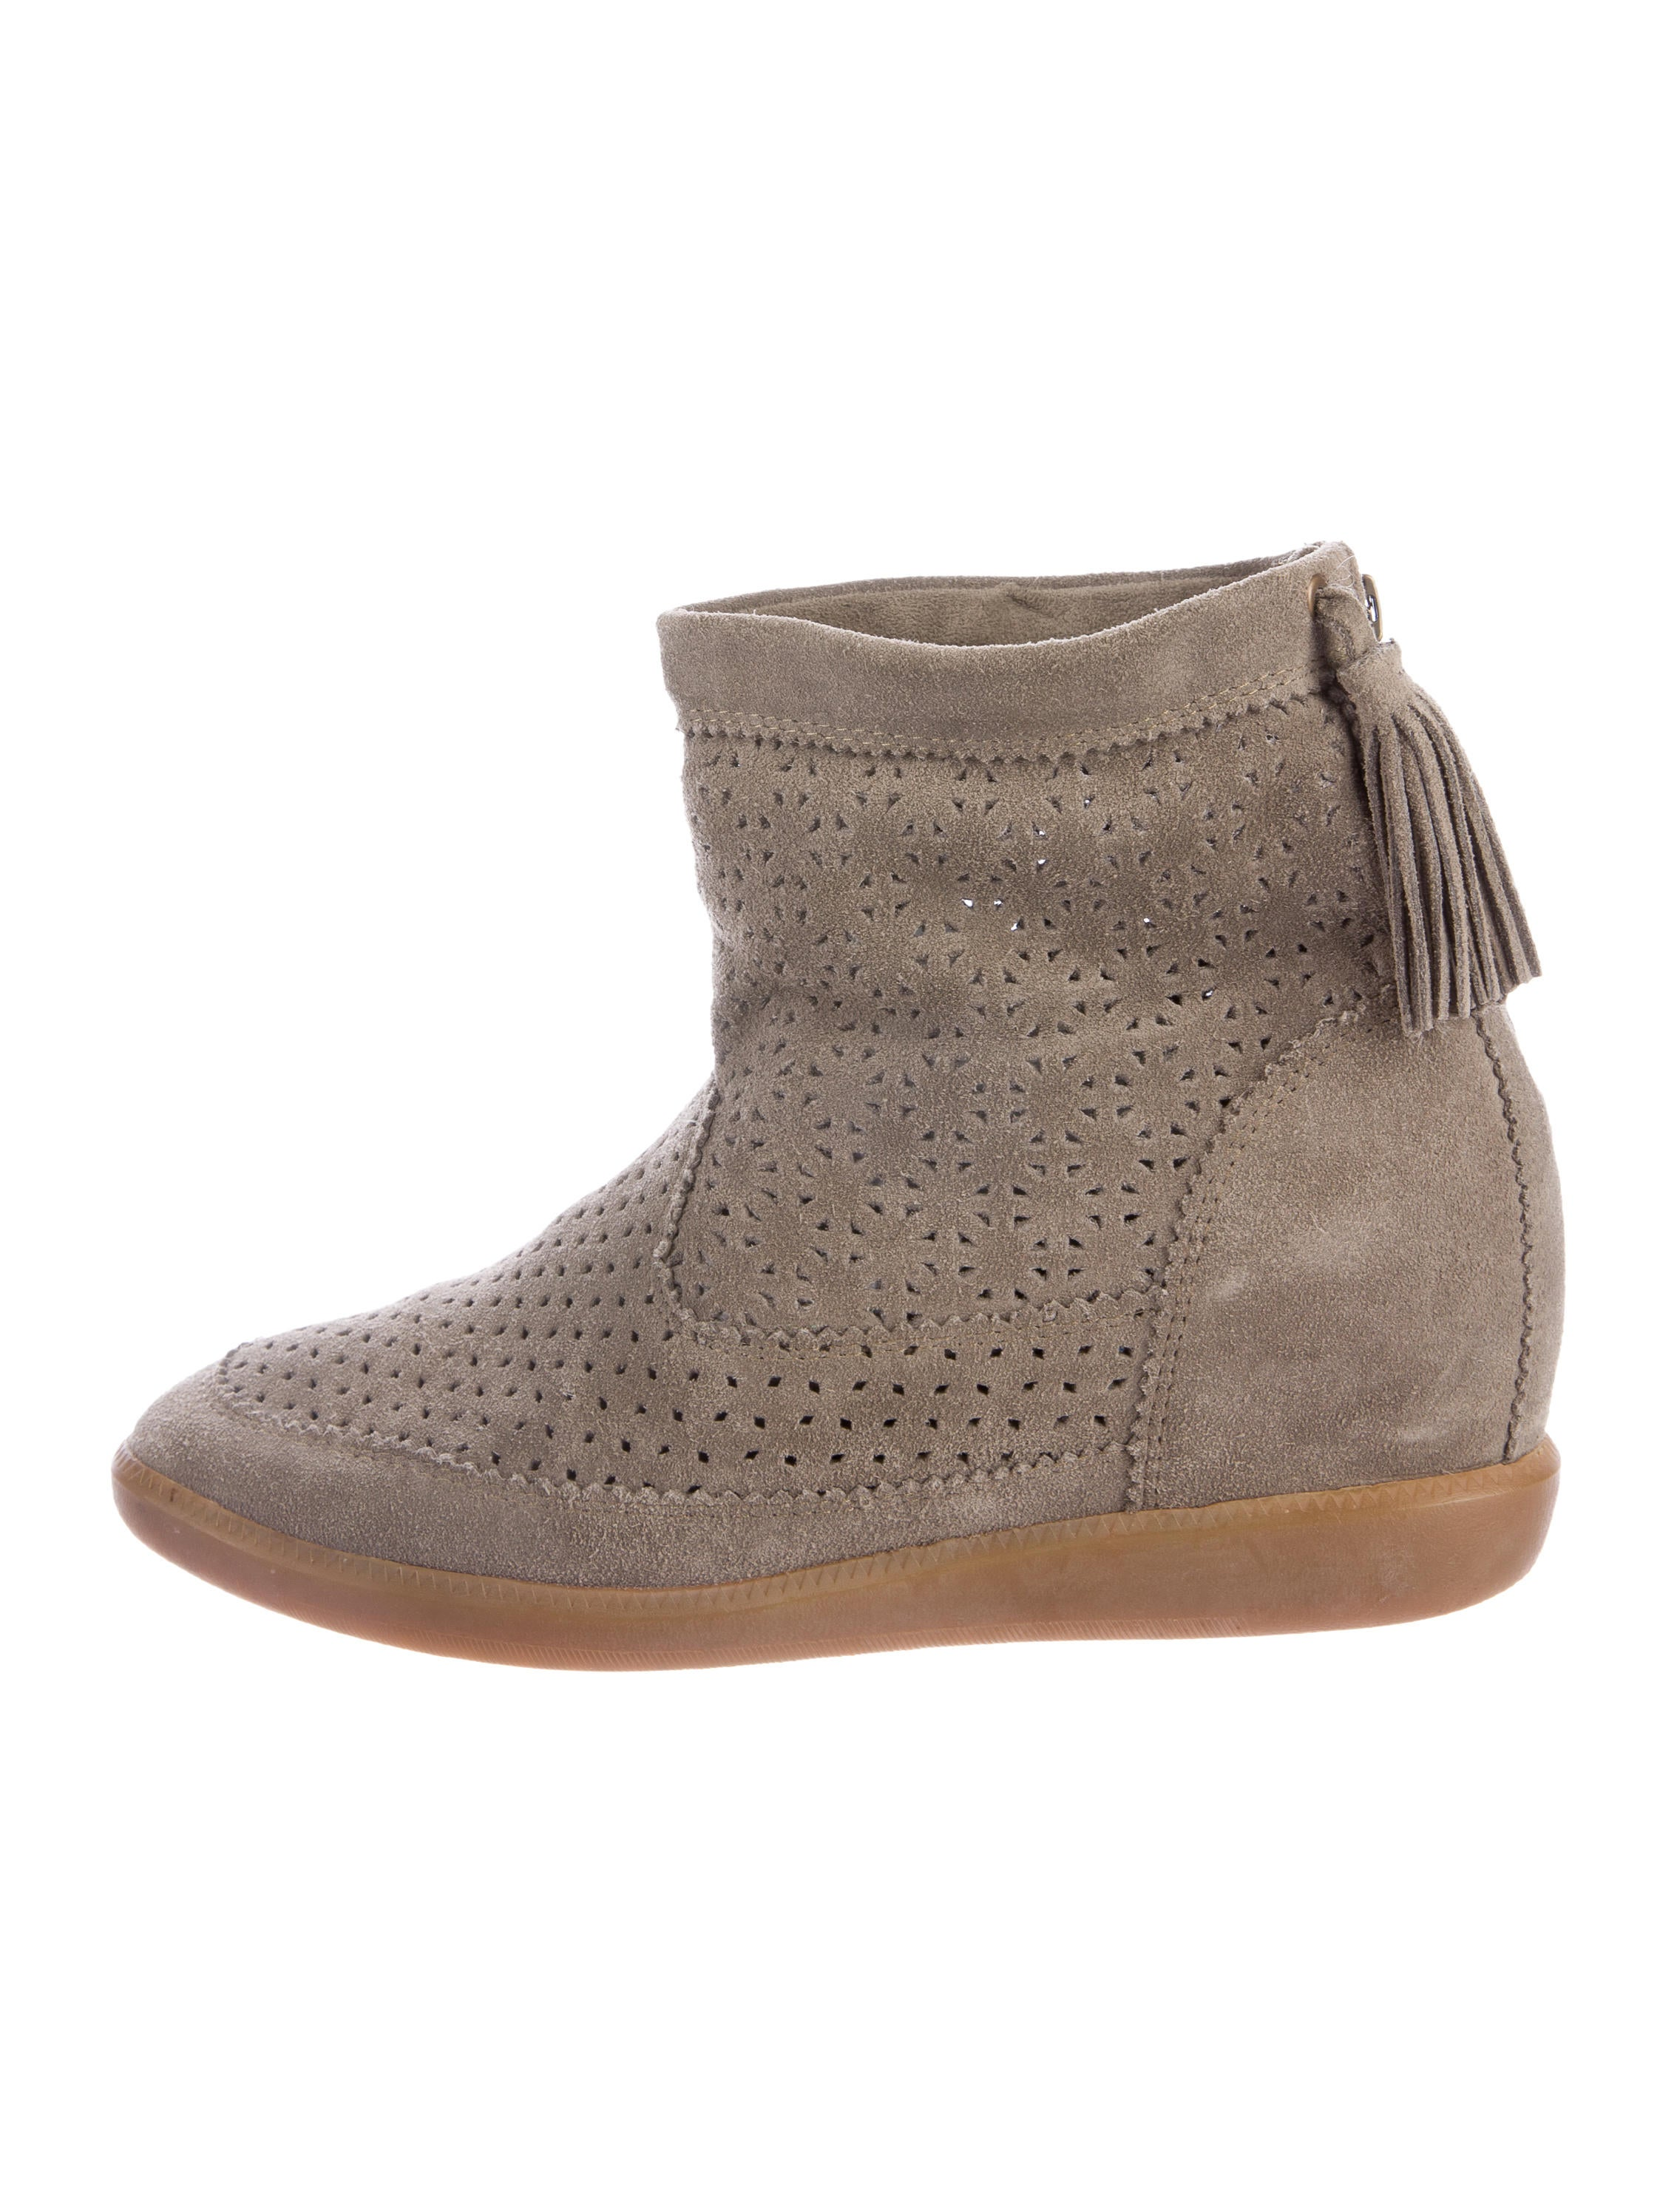 9c8e1d49caa1 Isabel Marant Beslay Wedge Booties - Shoes - ISA43381